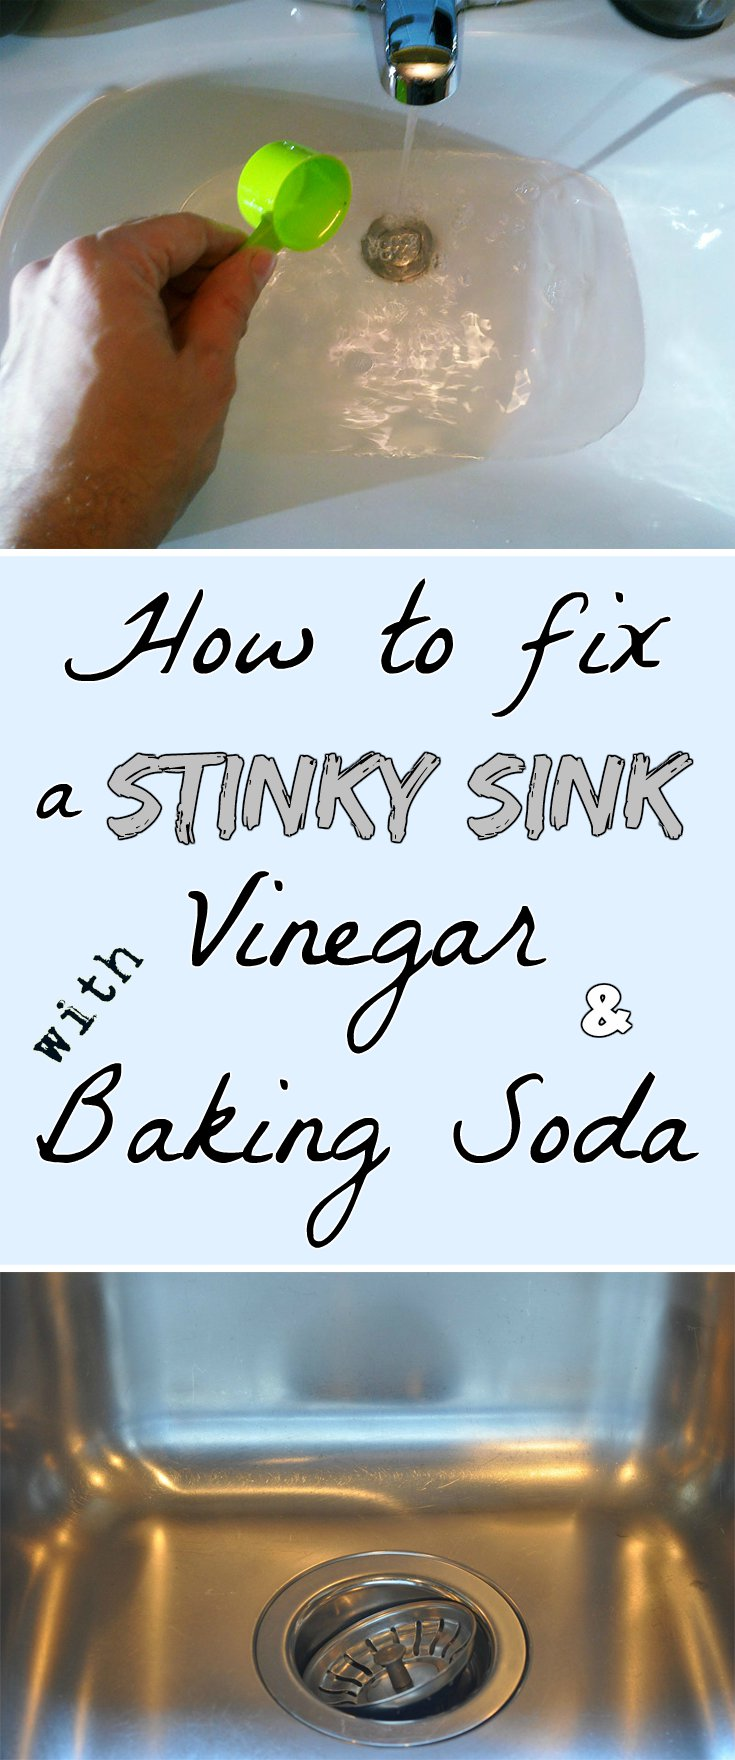 How To Fix A Stinky Sink With Vinegar And Baking Soda